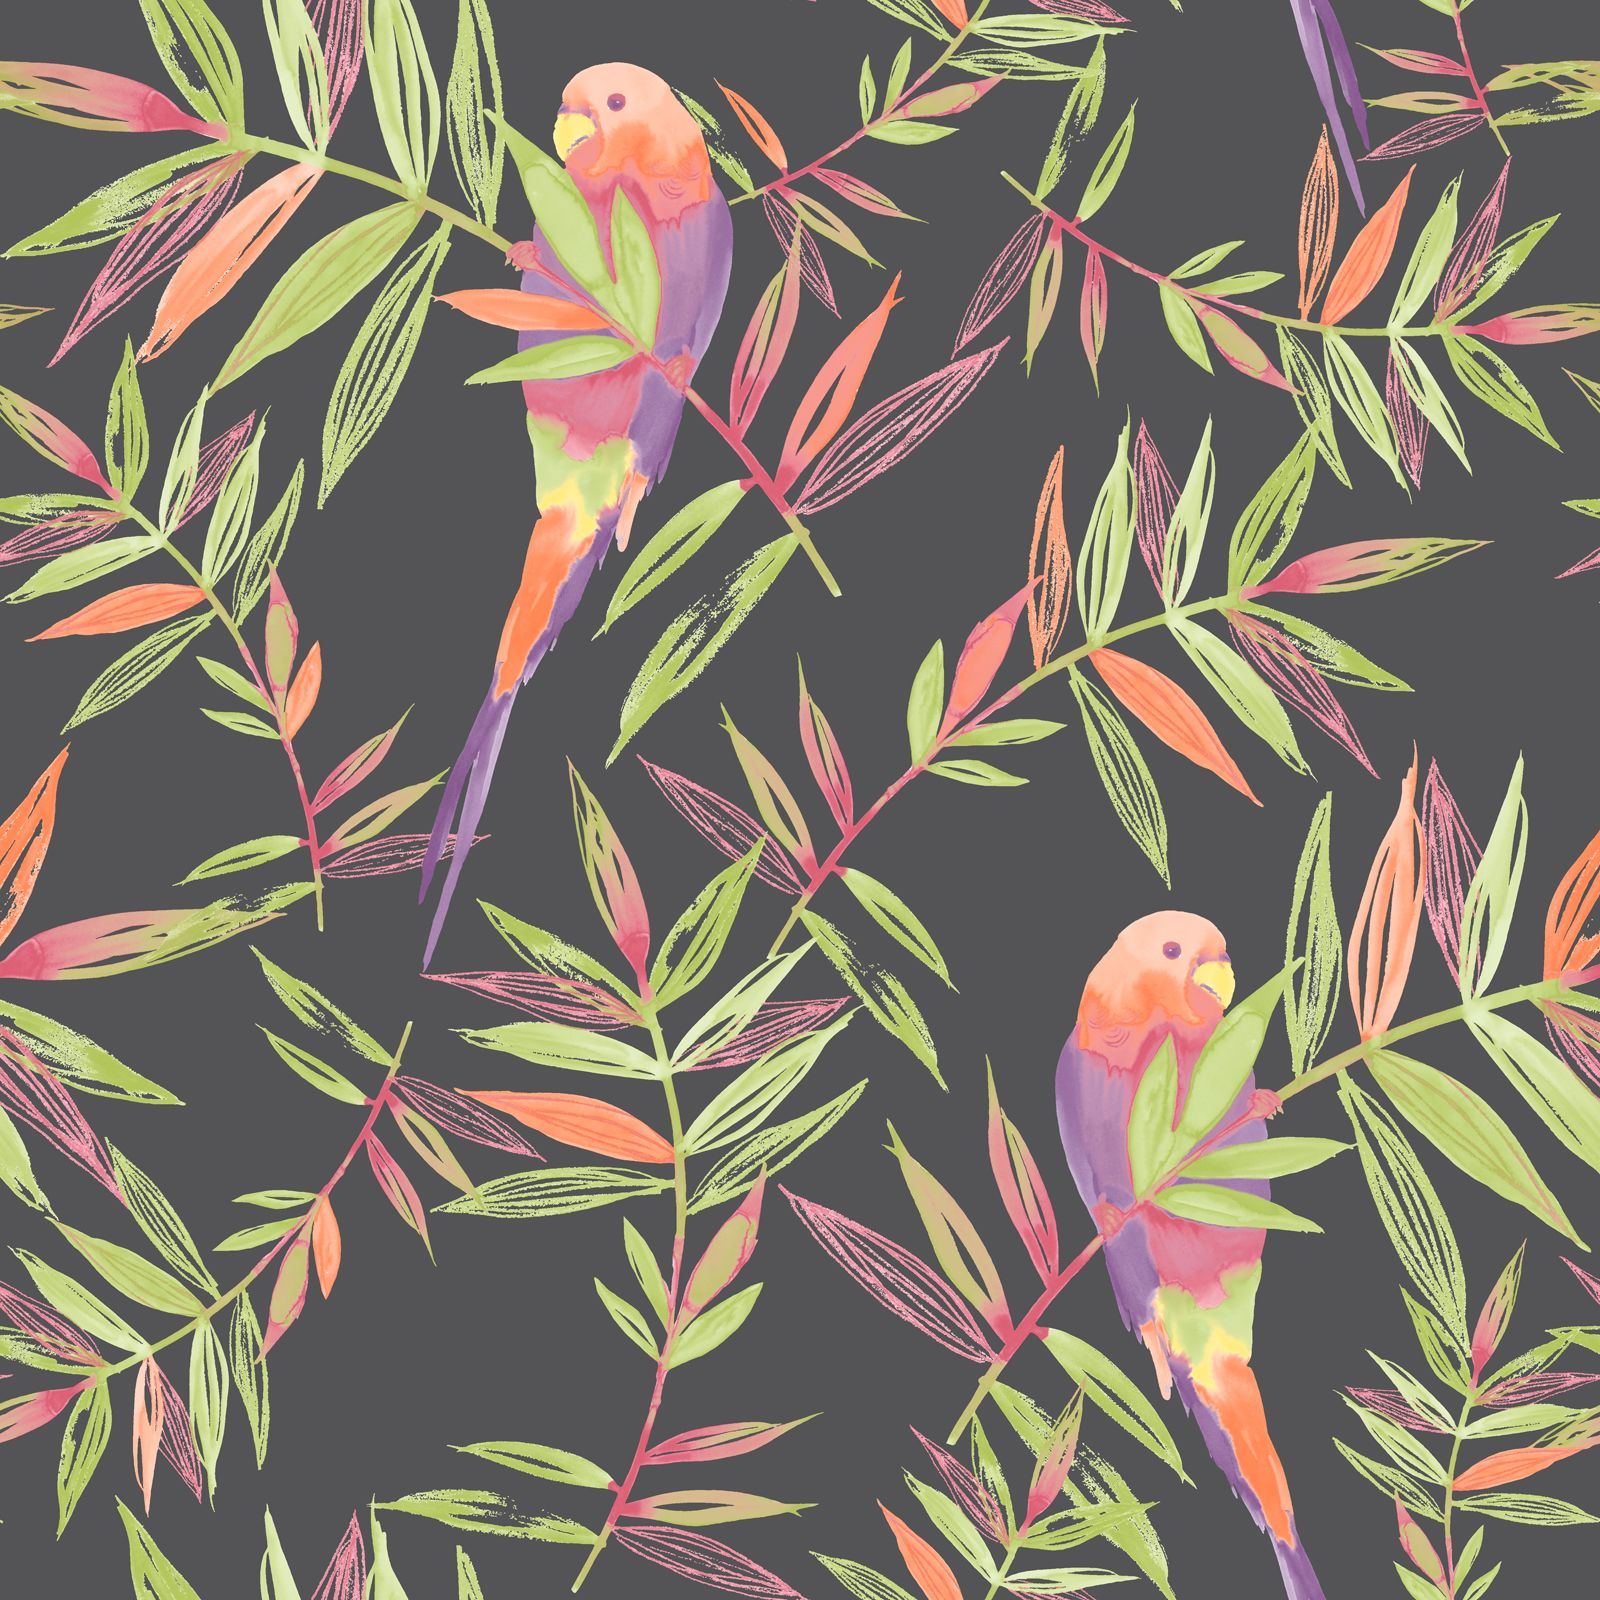 Vintage Style Tropical Bird And Flowers Background: Birds Wallpaper Tropical Parrot Floral Leaves Jungle Black